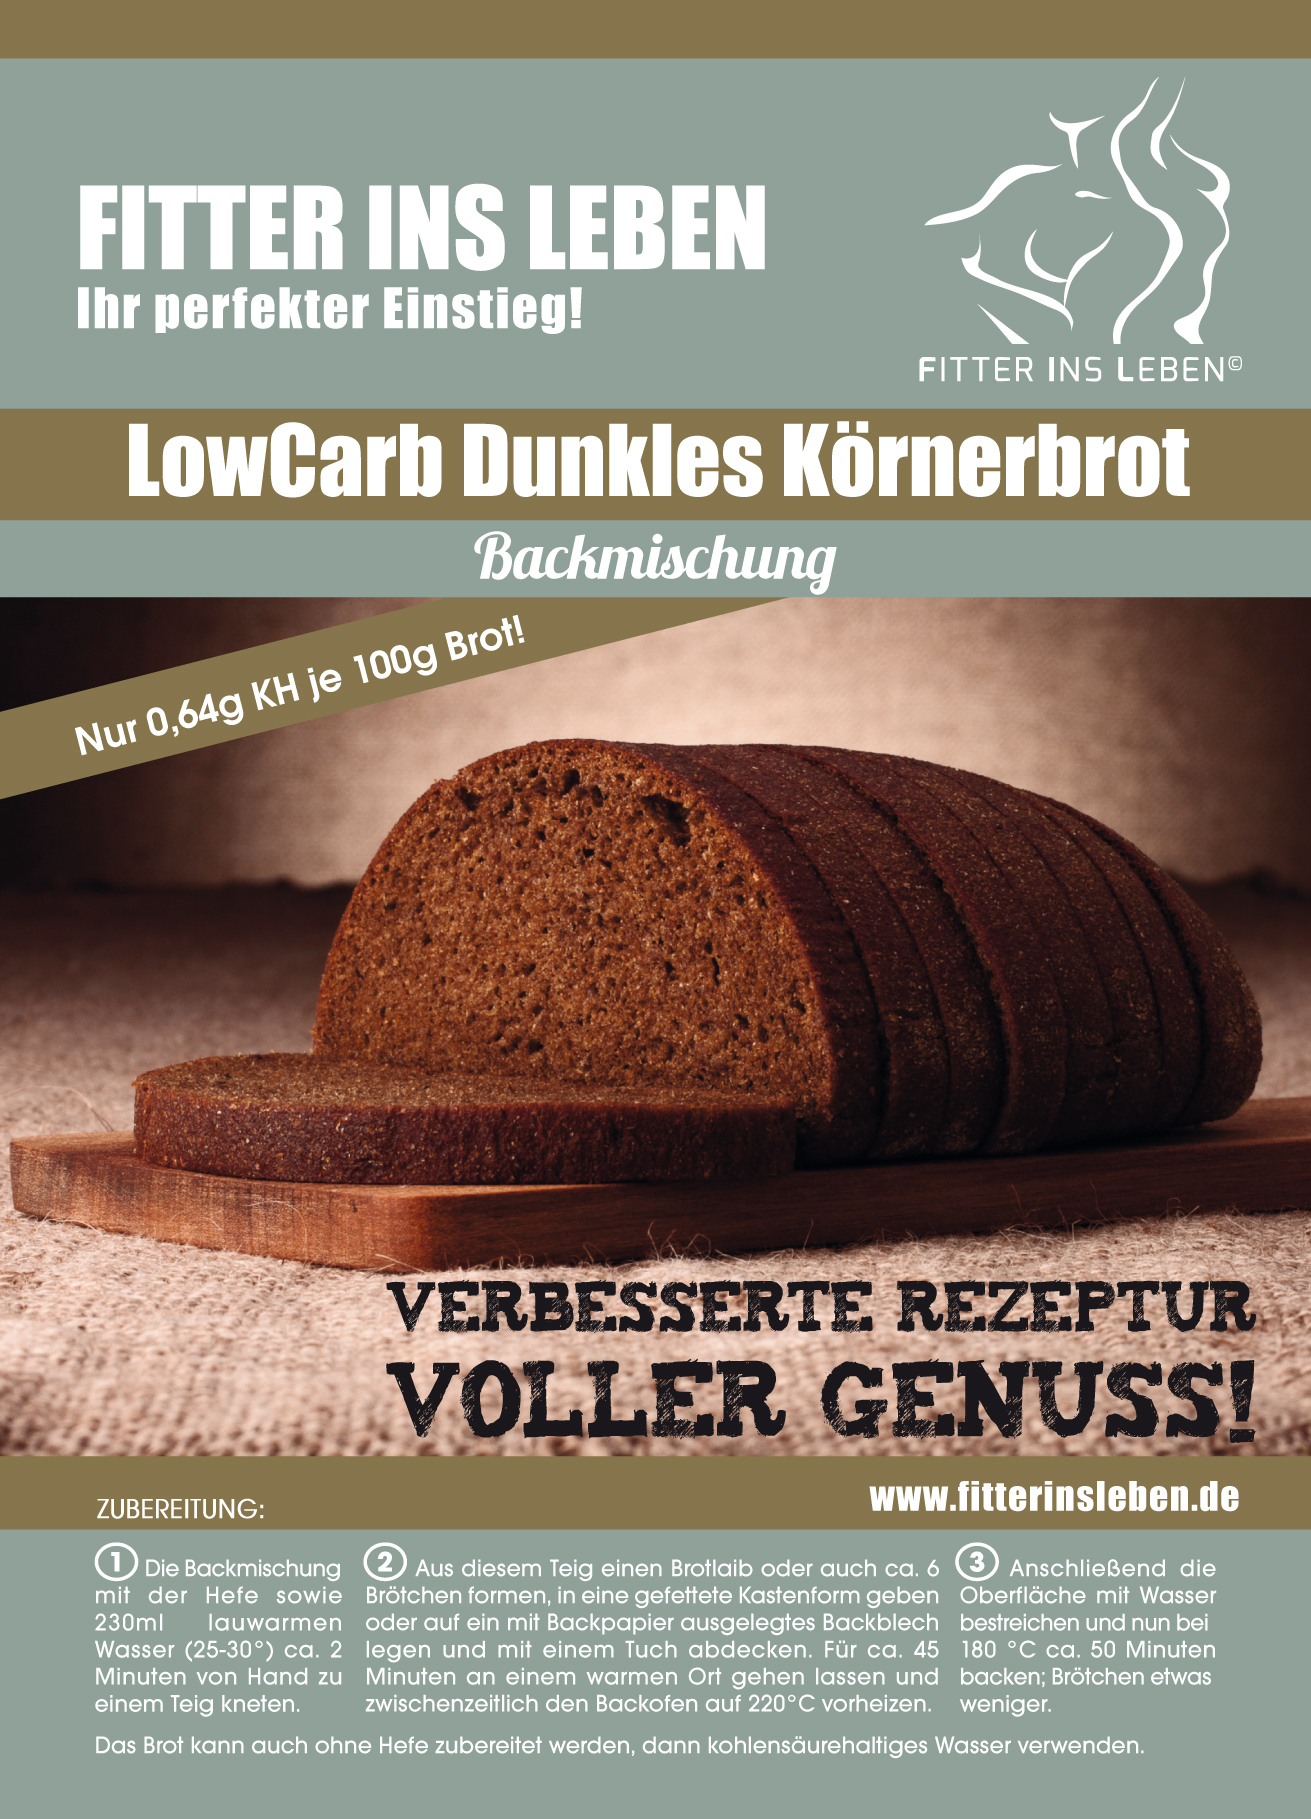 FIL-Koernerbrot-http://www.carboo-shop.de/index.php?route=product/product&path=112&product_id=521